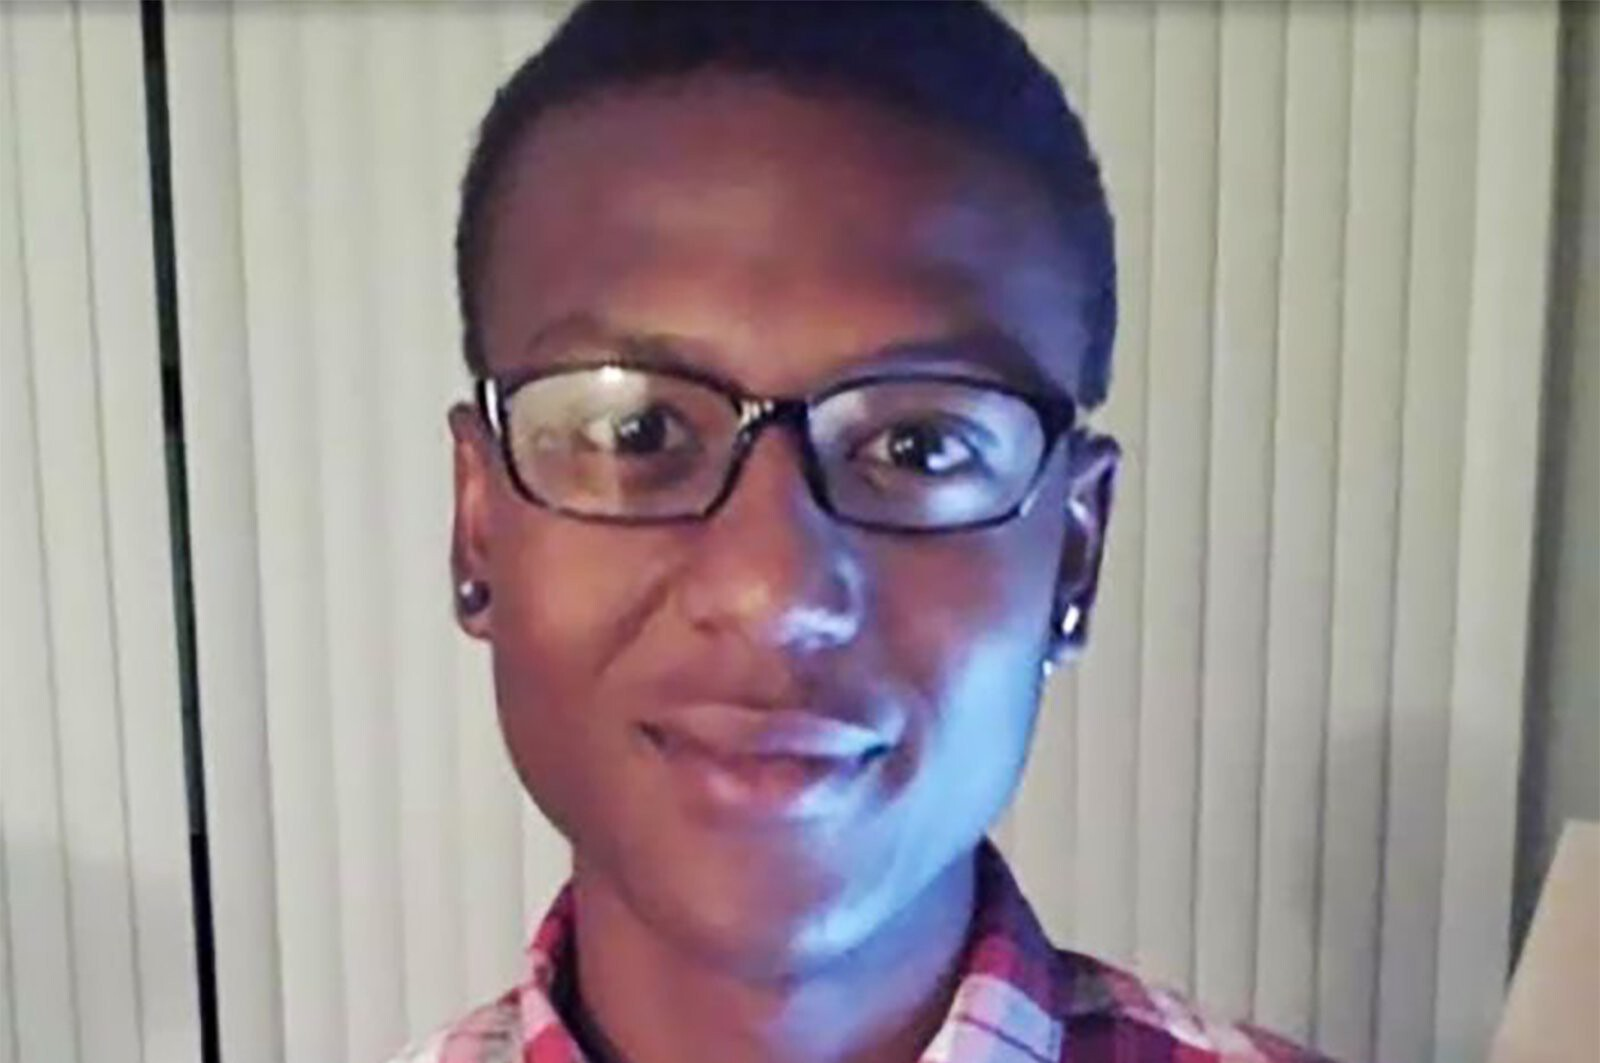 Grand jury indicts police officers and paramedics in 2019 death of Elijah McClain